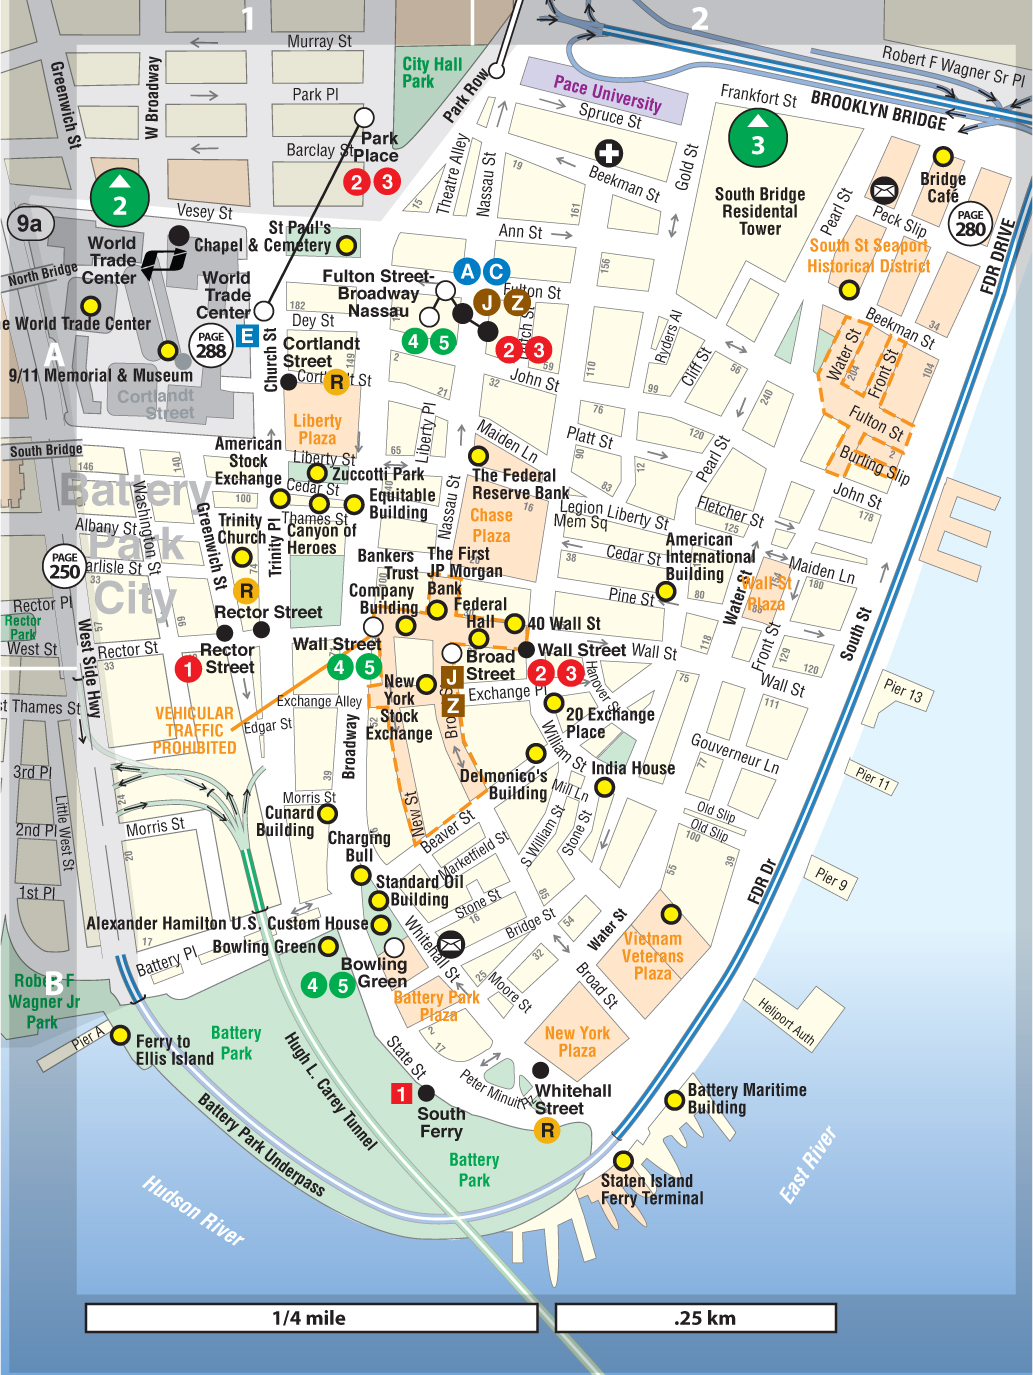 Financial District Not For Tourists Guide To New York City Not - Map of new york ellis island